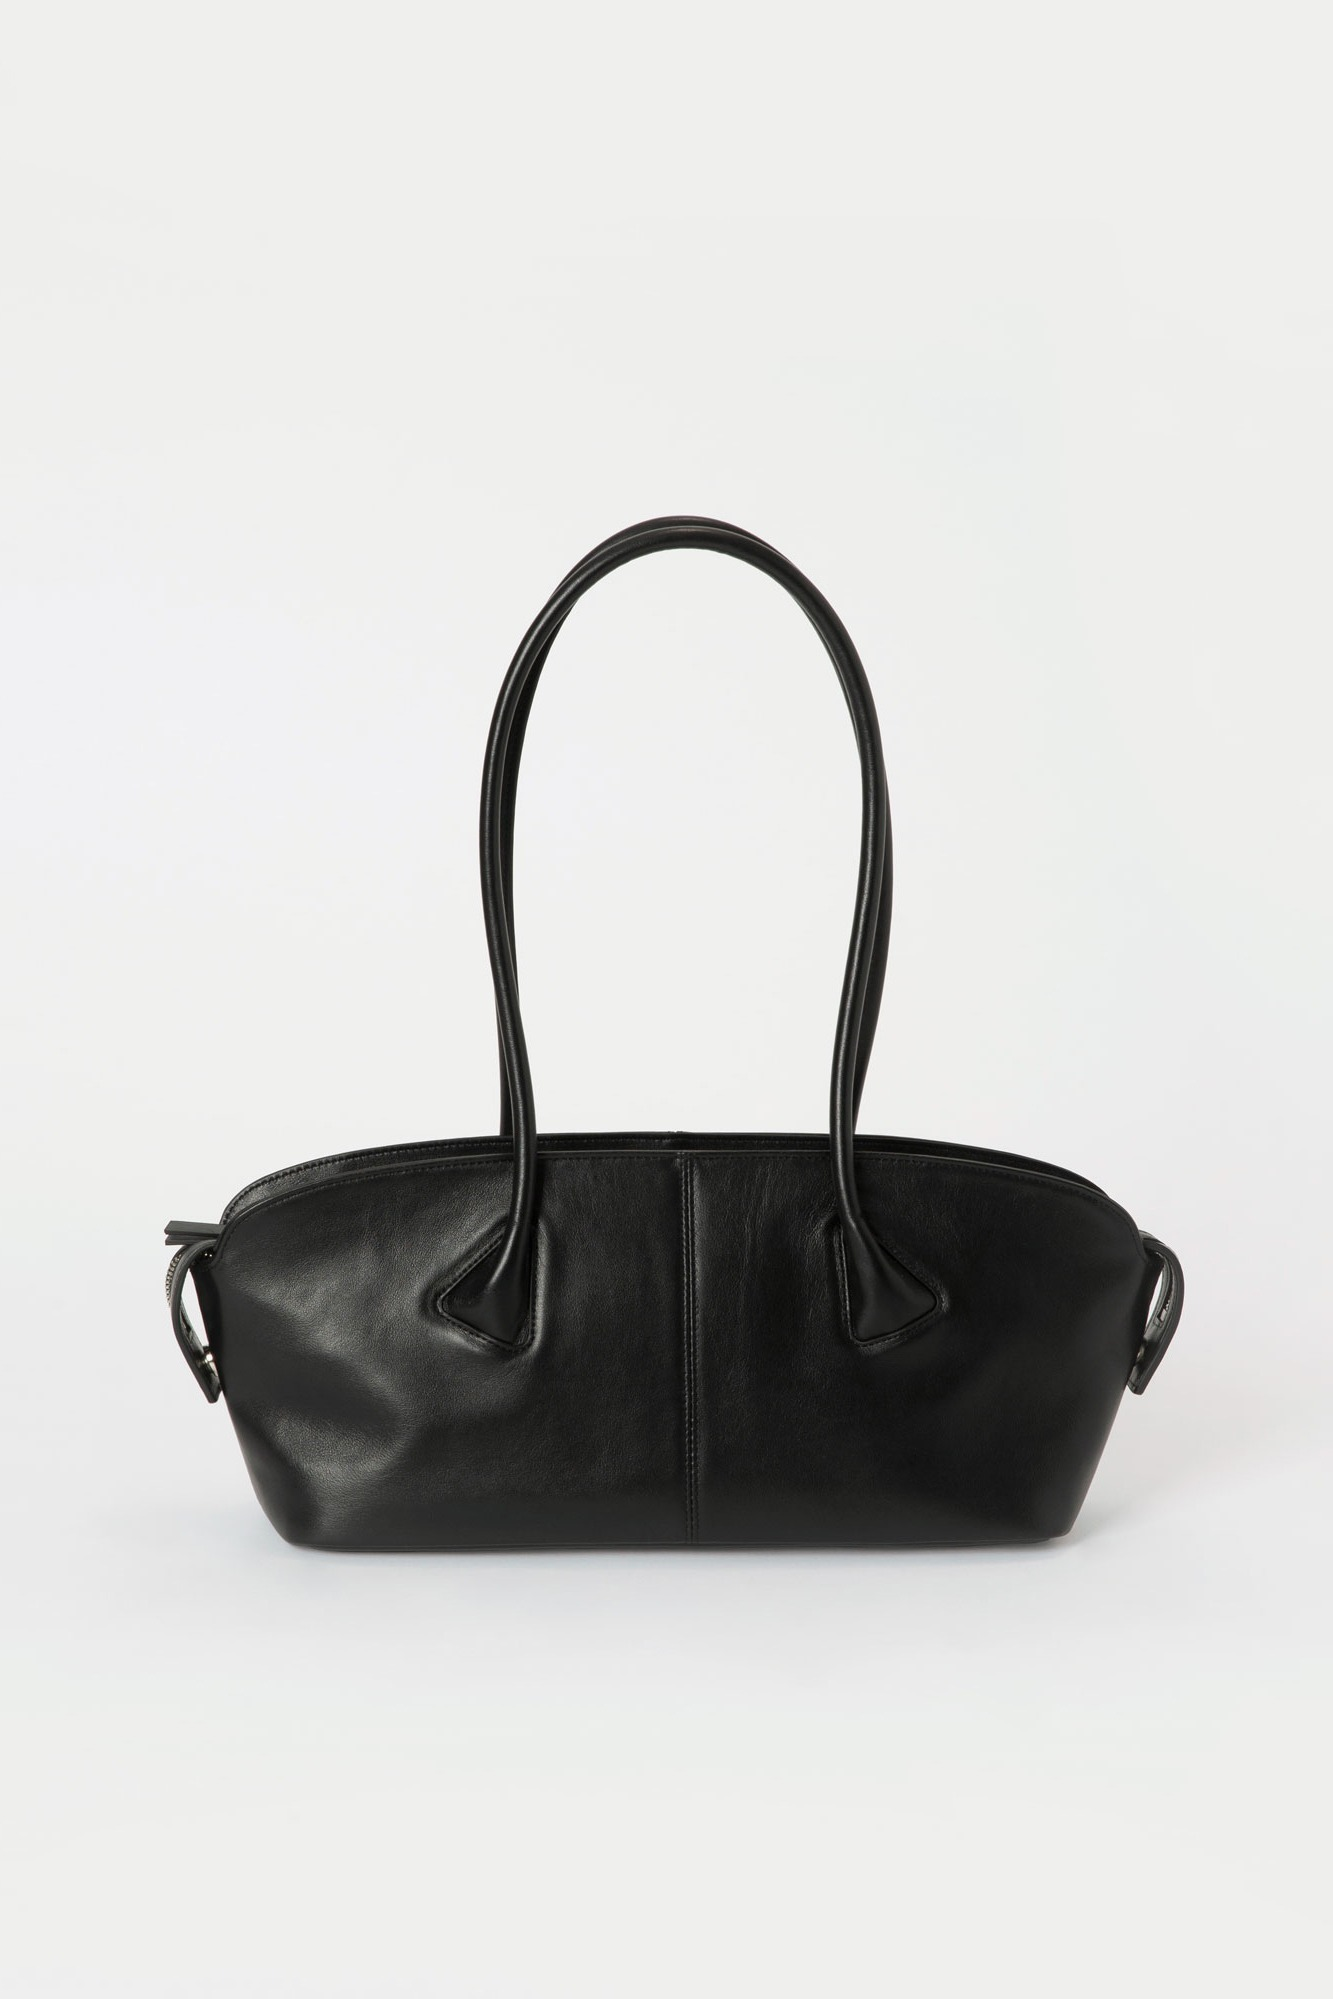 shop low classic bags